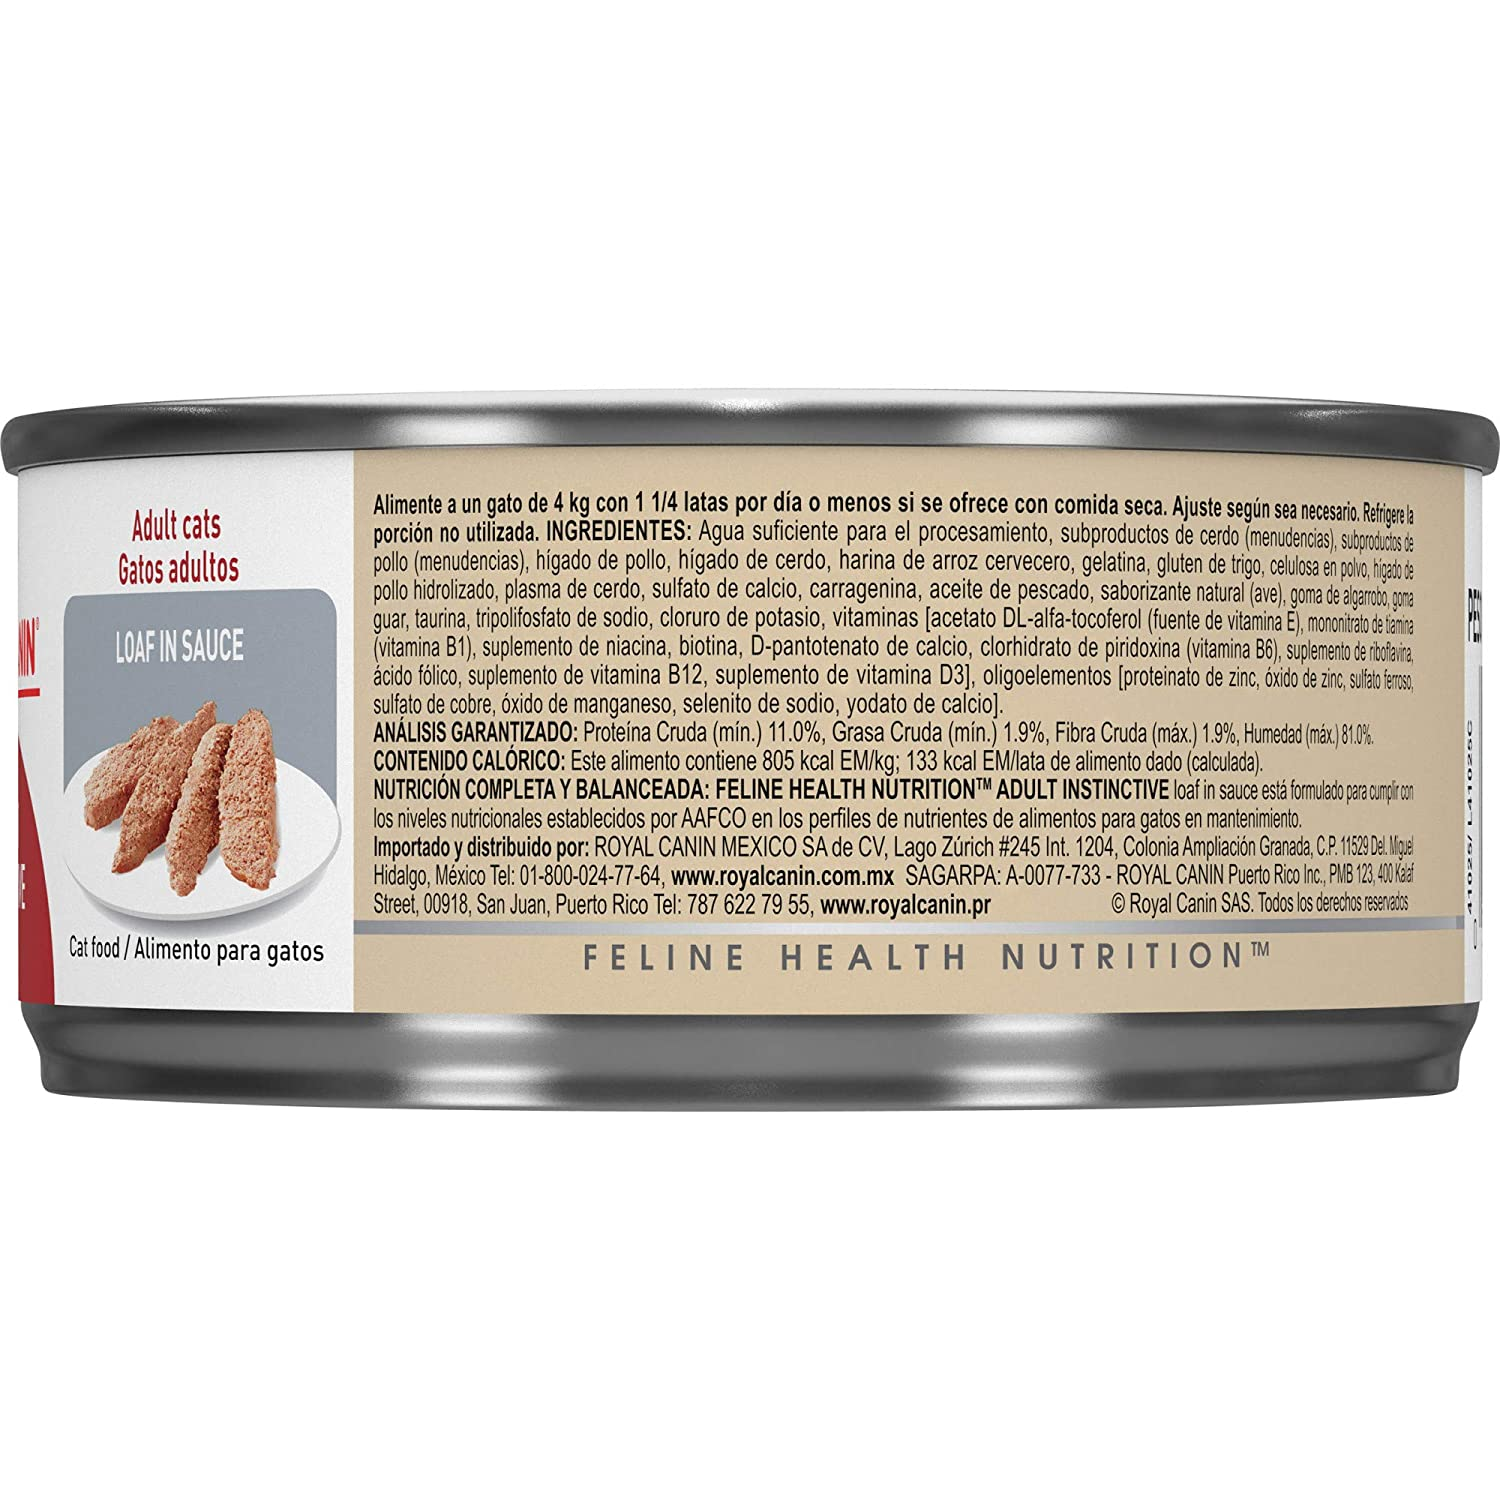 Amazon.com : Royal Canin Feline Health Nutrition Adult Instinctive Loaf in Sauce Canned Cat Food, 5.8 Ounce Can (Pack of 24) : Pet Supplies